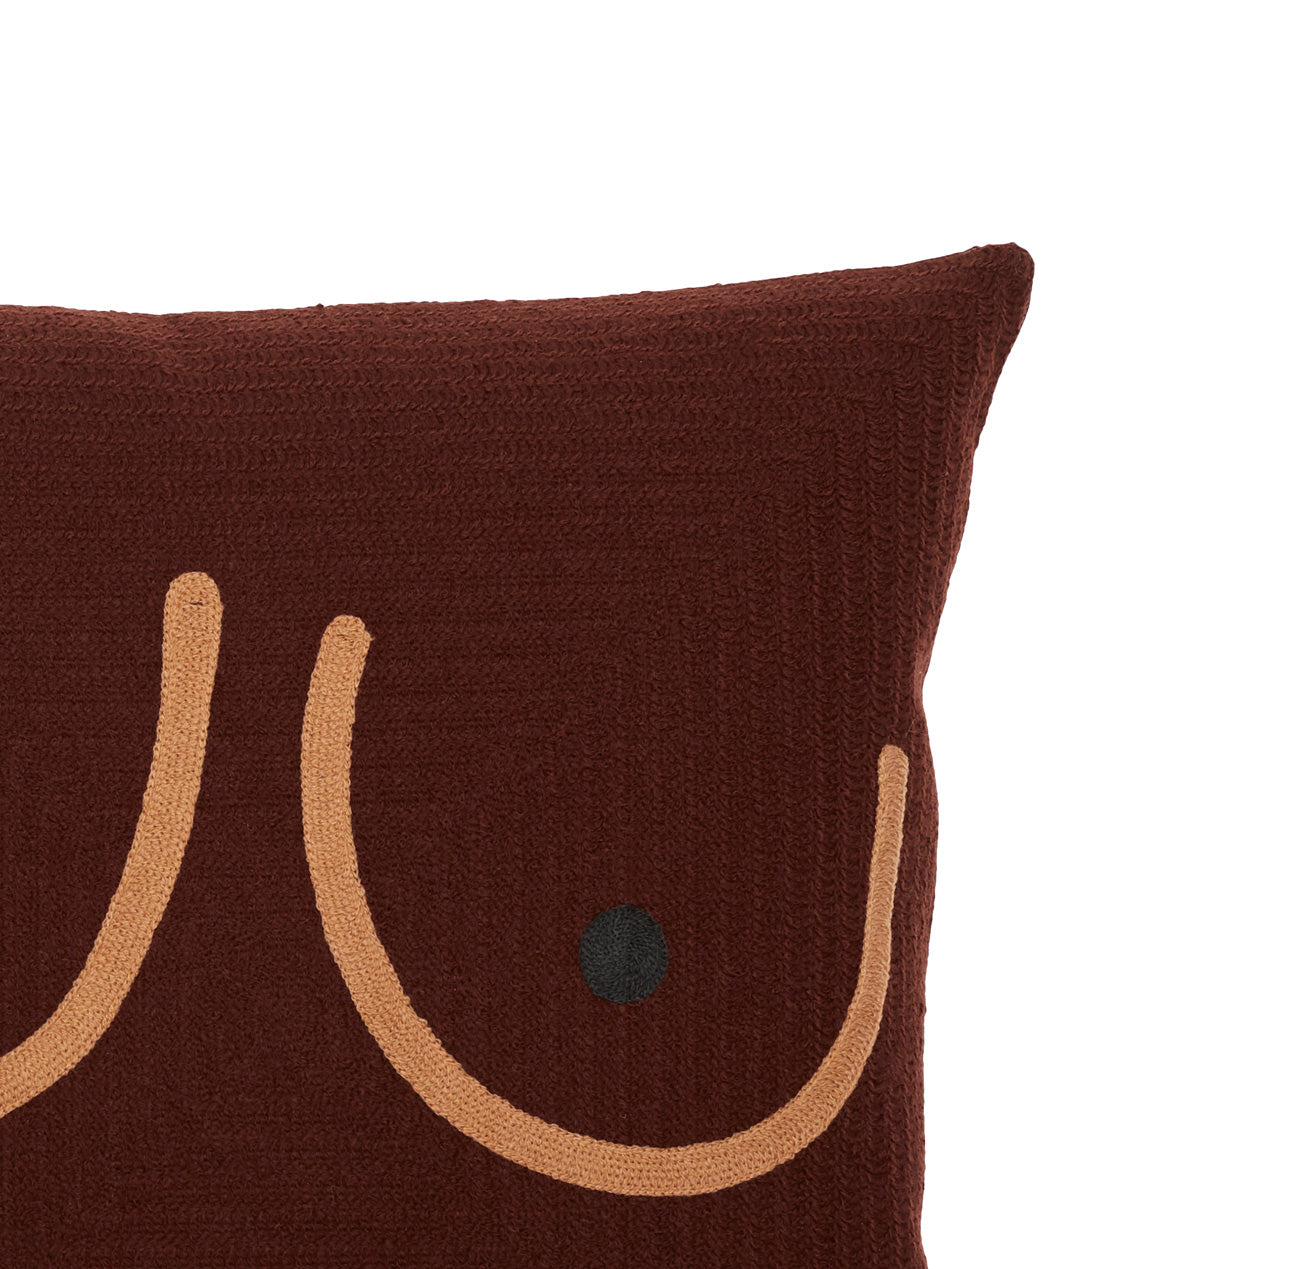 Deep Brown Boob Pillow w/ Brown